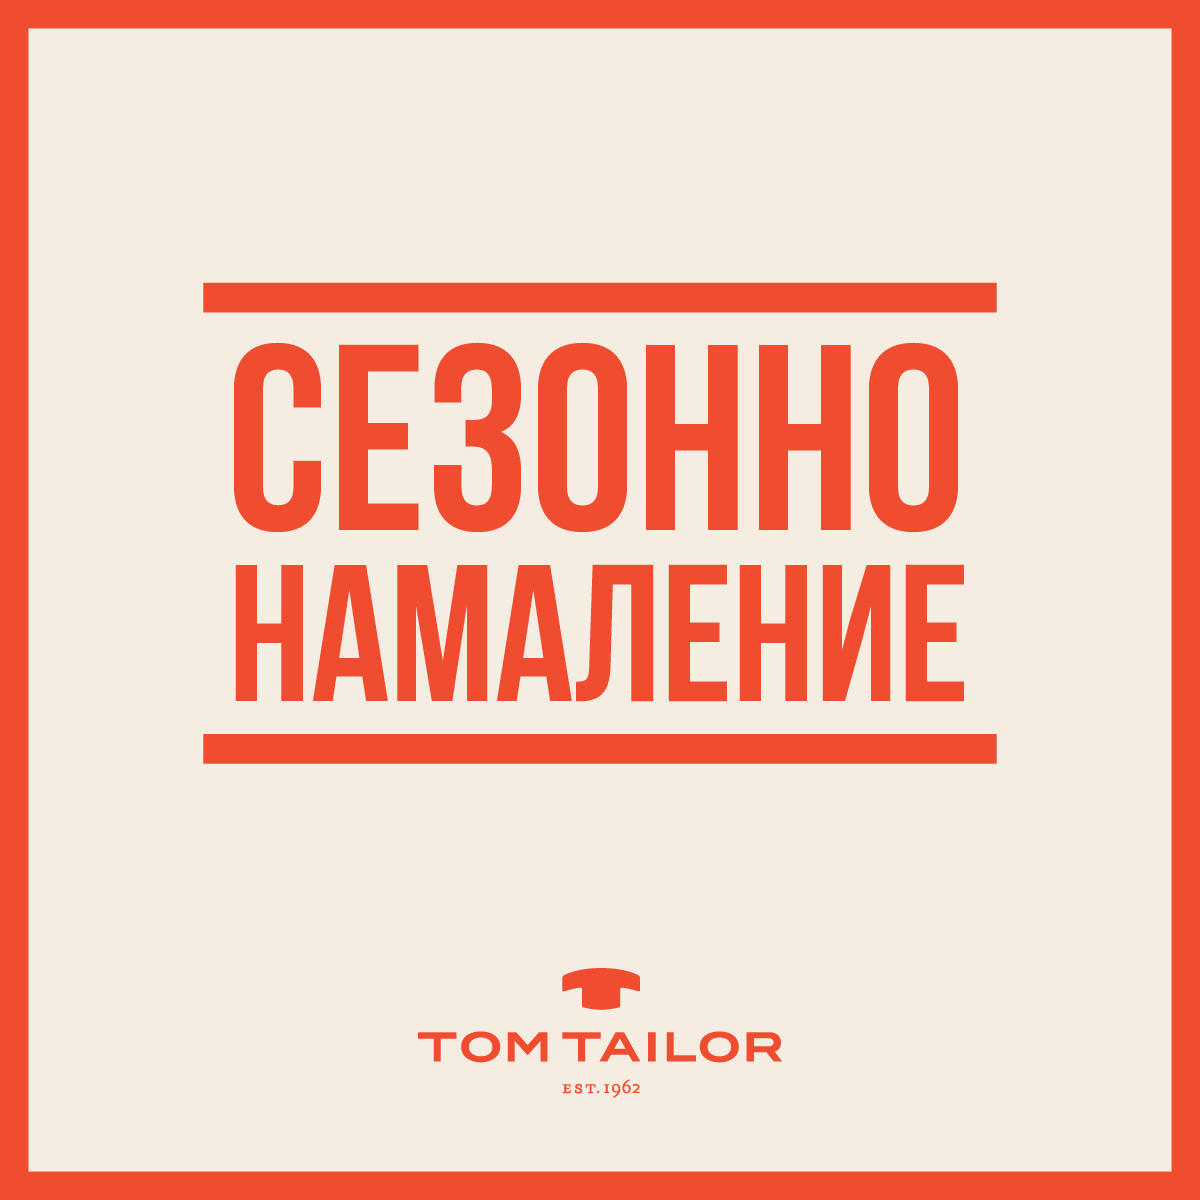 A Seasonal Discount at Tom Tailor